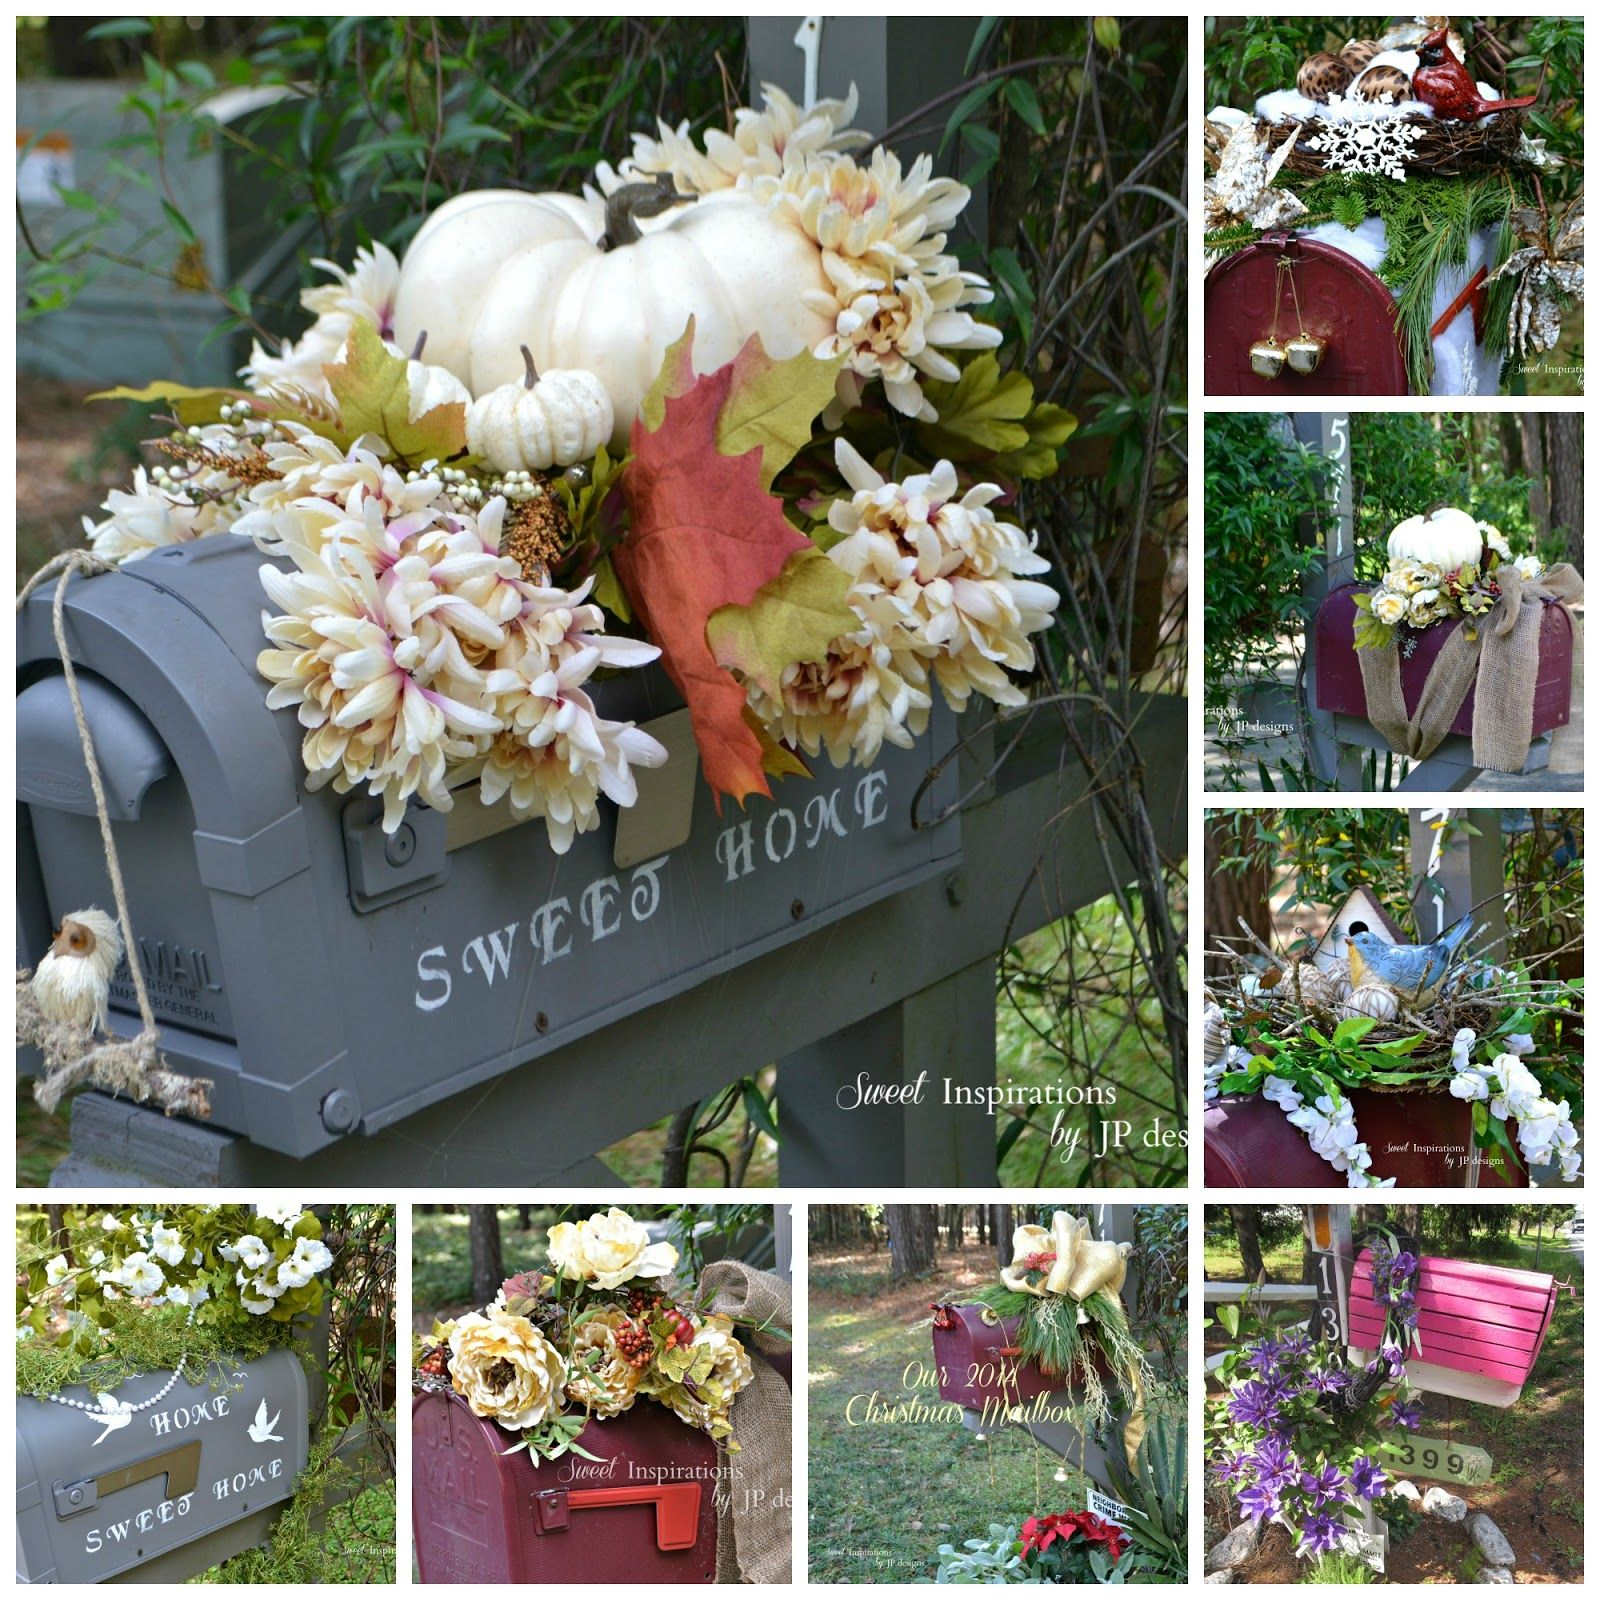 Sweet Inspirations by JP designs: Mailbox Makeover for Fall